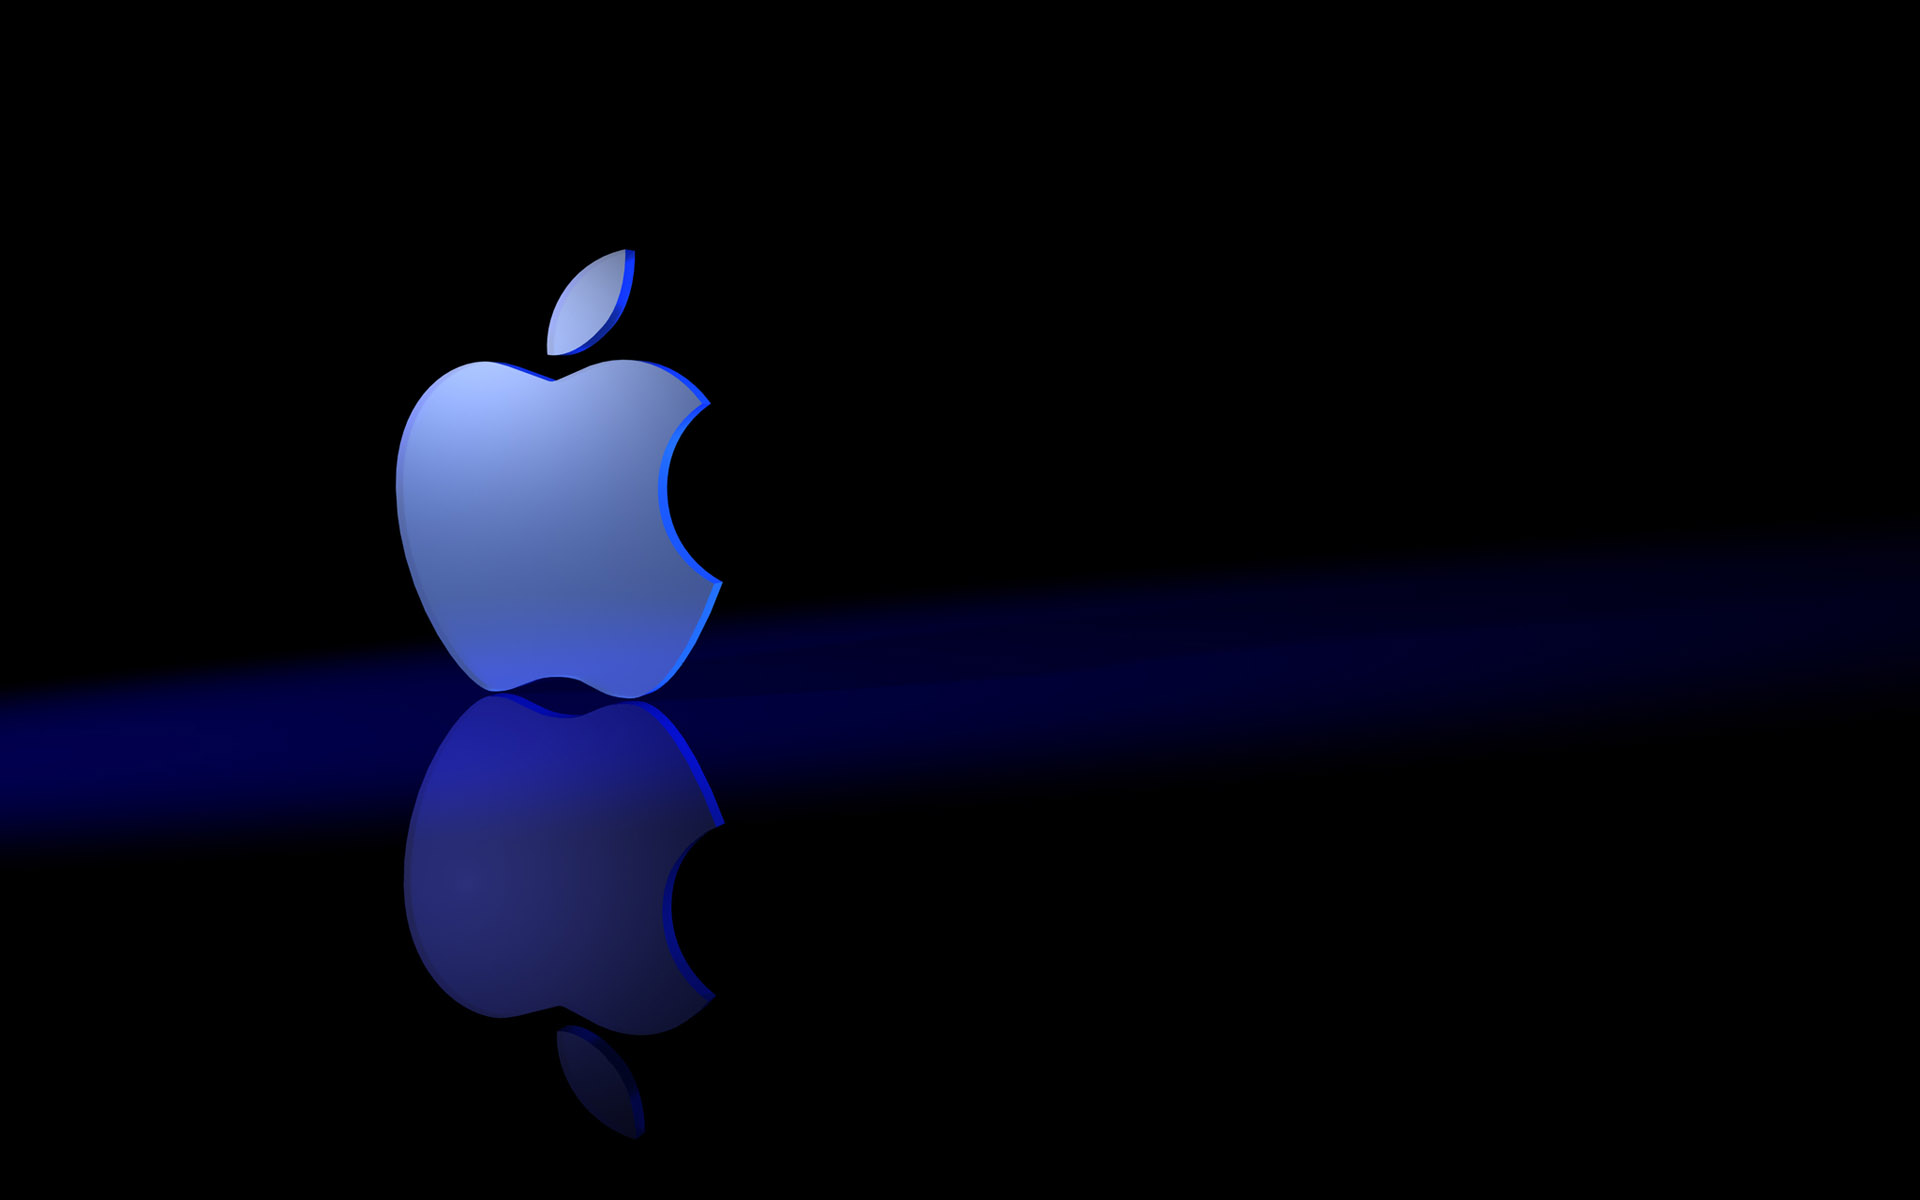 apple wallpaper 23059